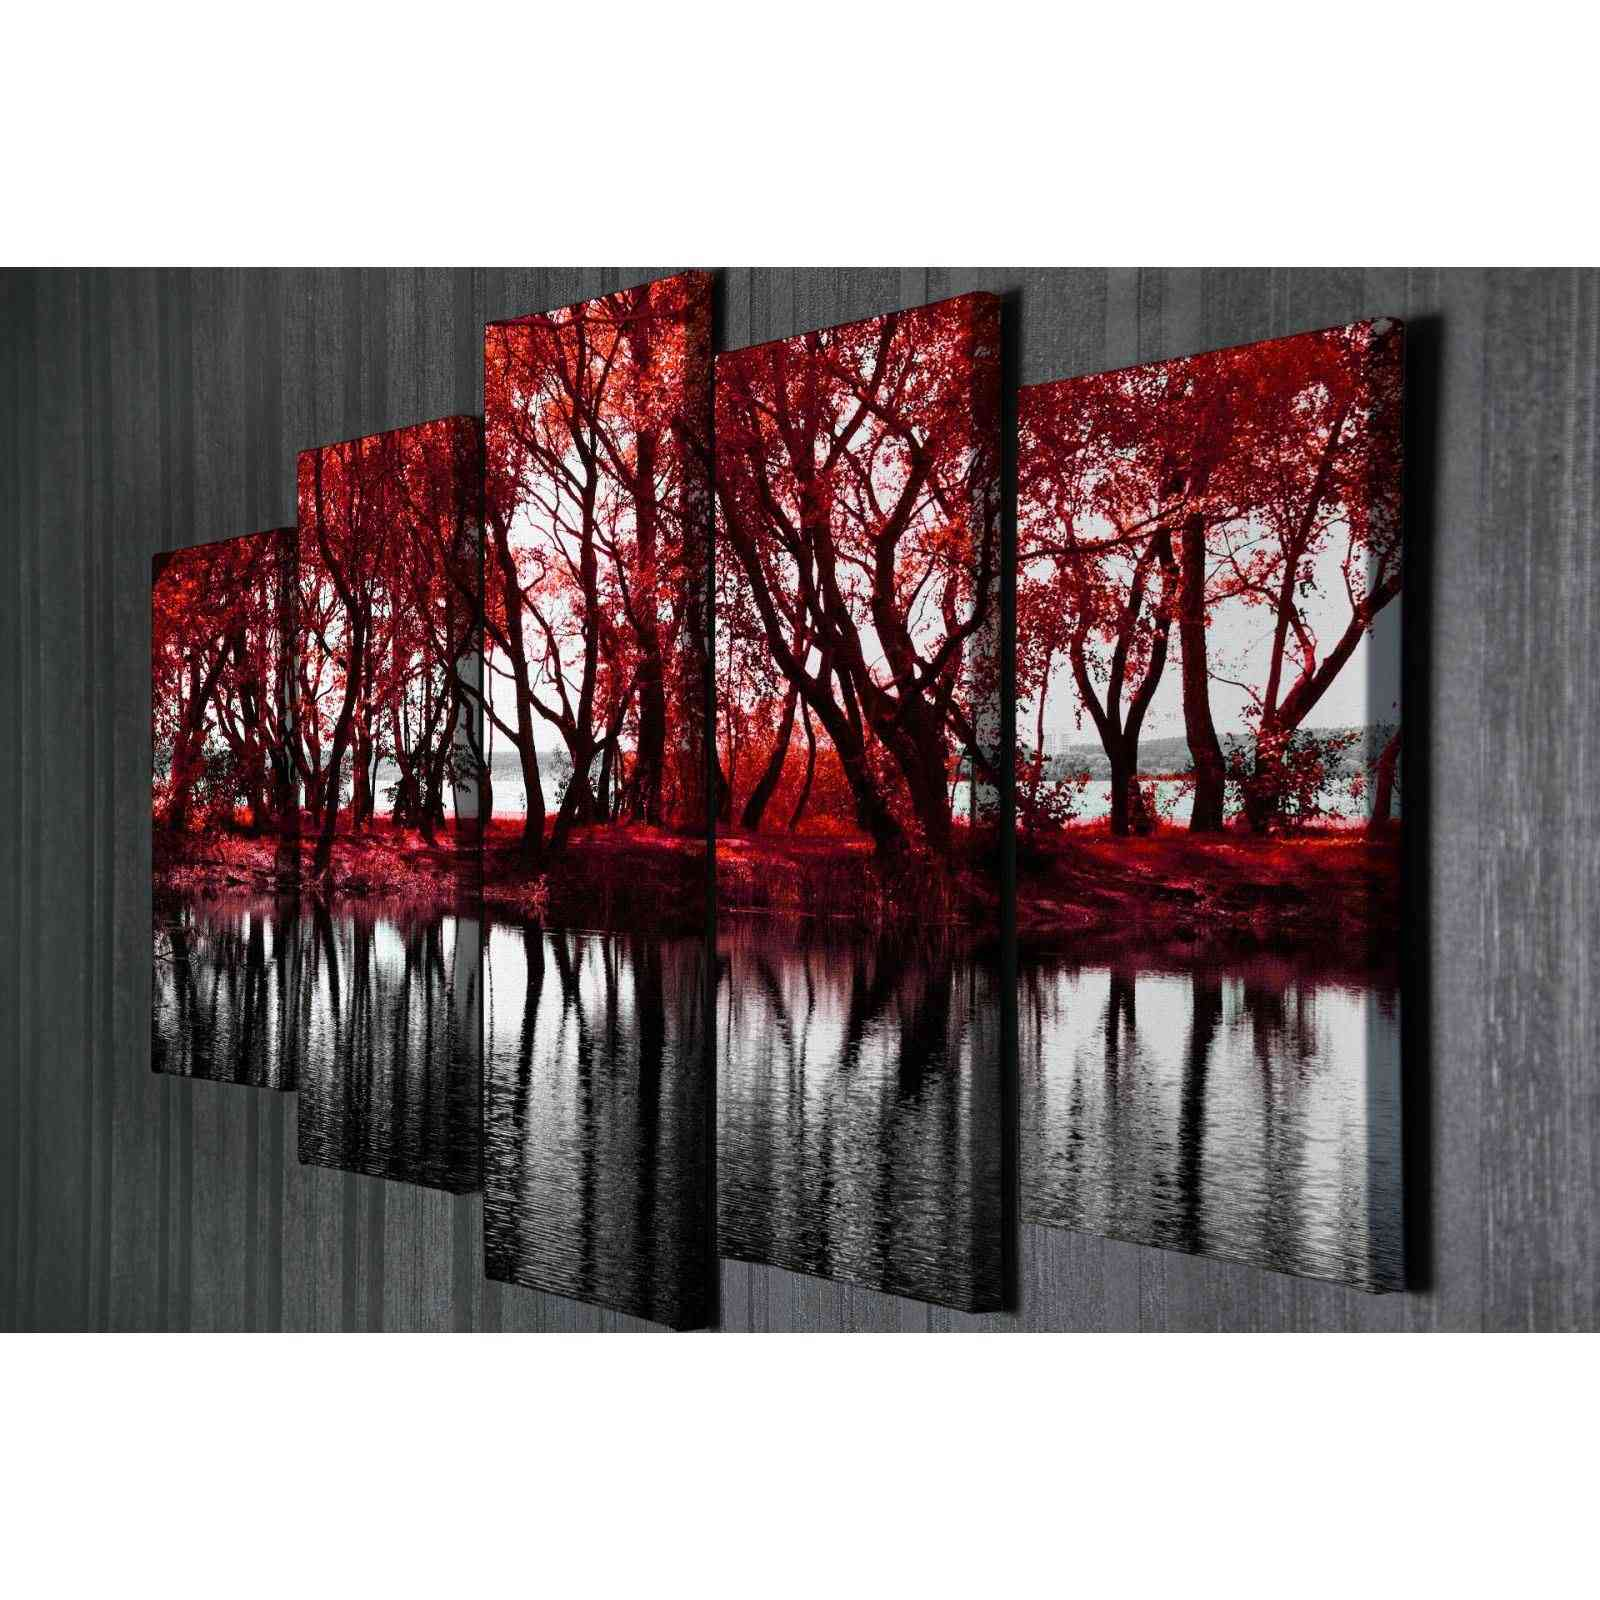 deco wall arbre 5 teiliges bild rot brandalley. Black Bedroom Furniture Sets. Home Design Ideas